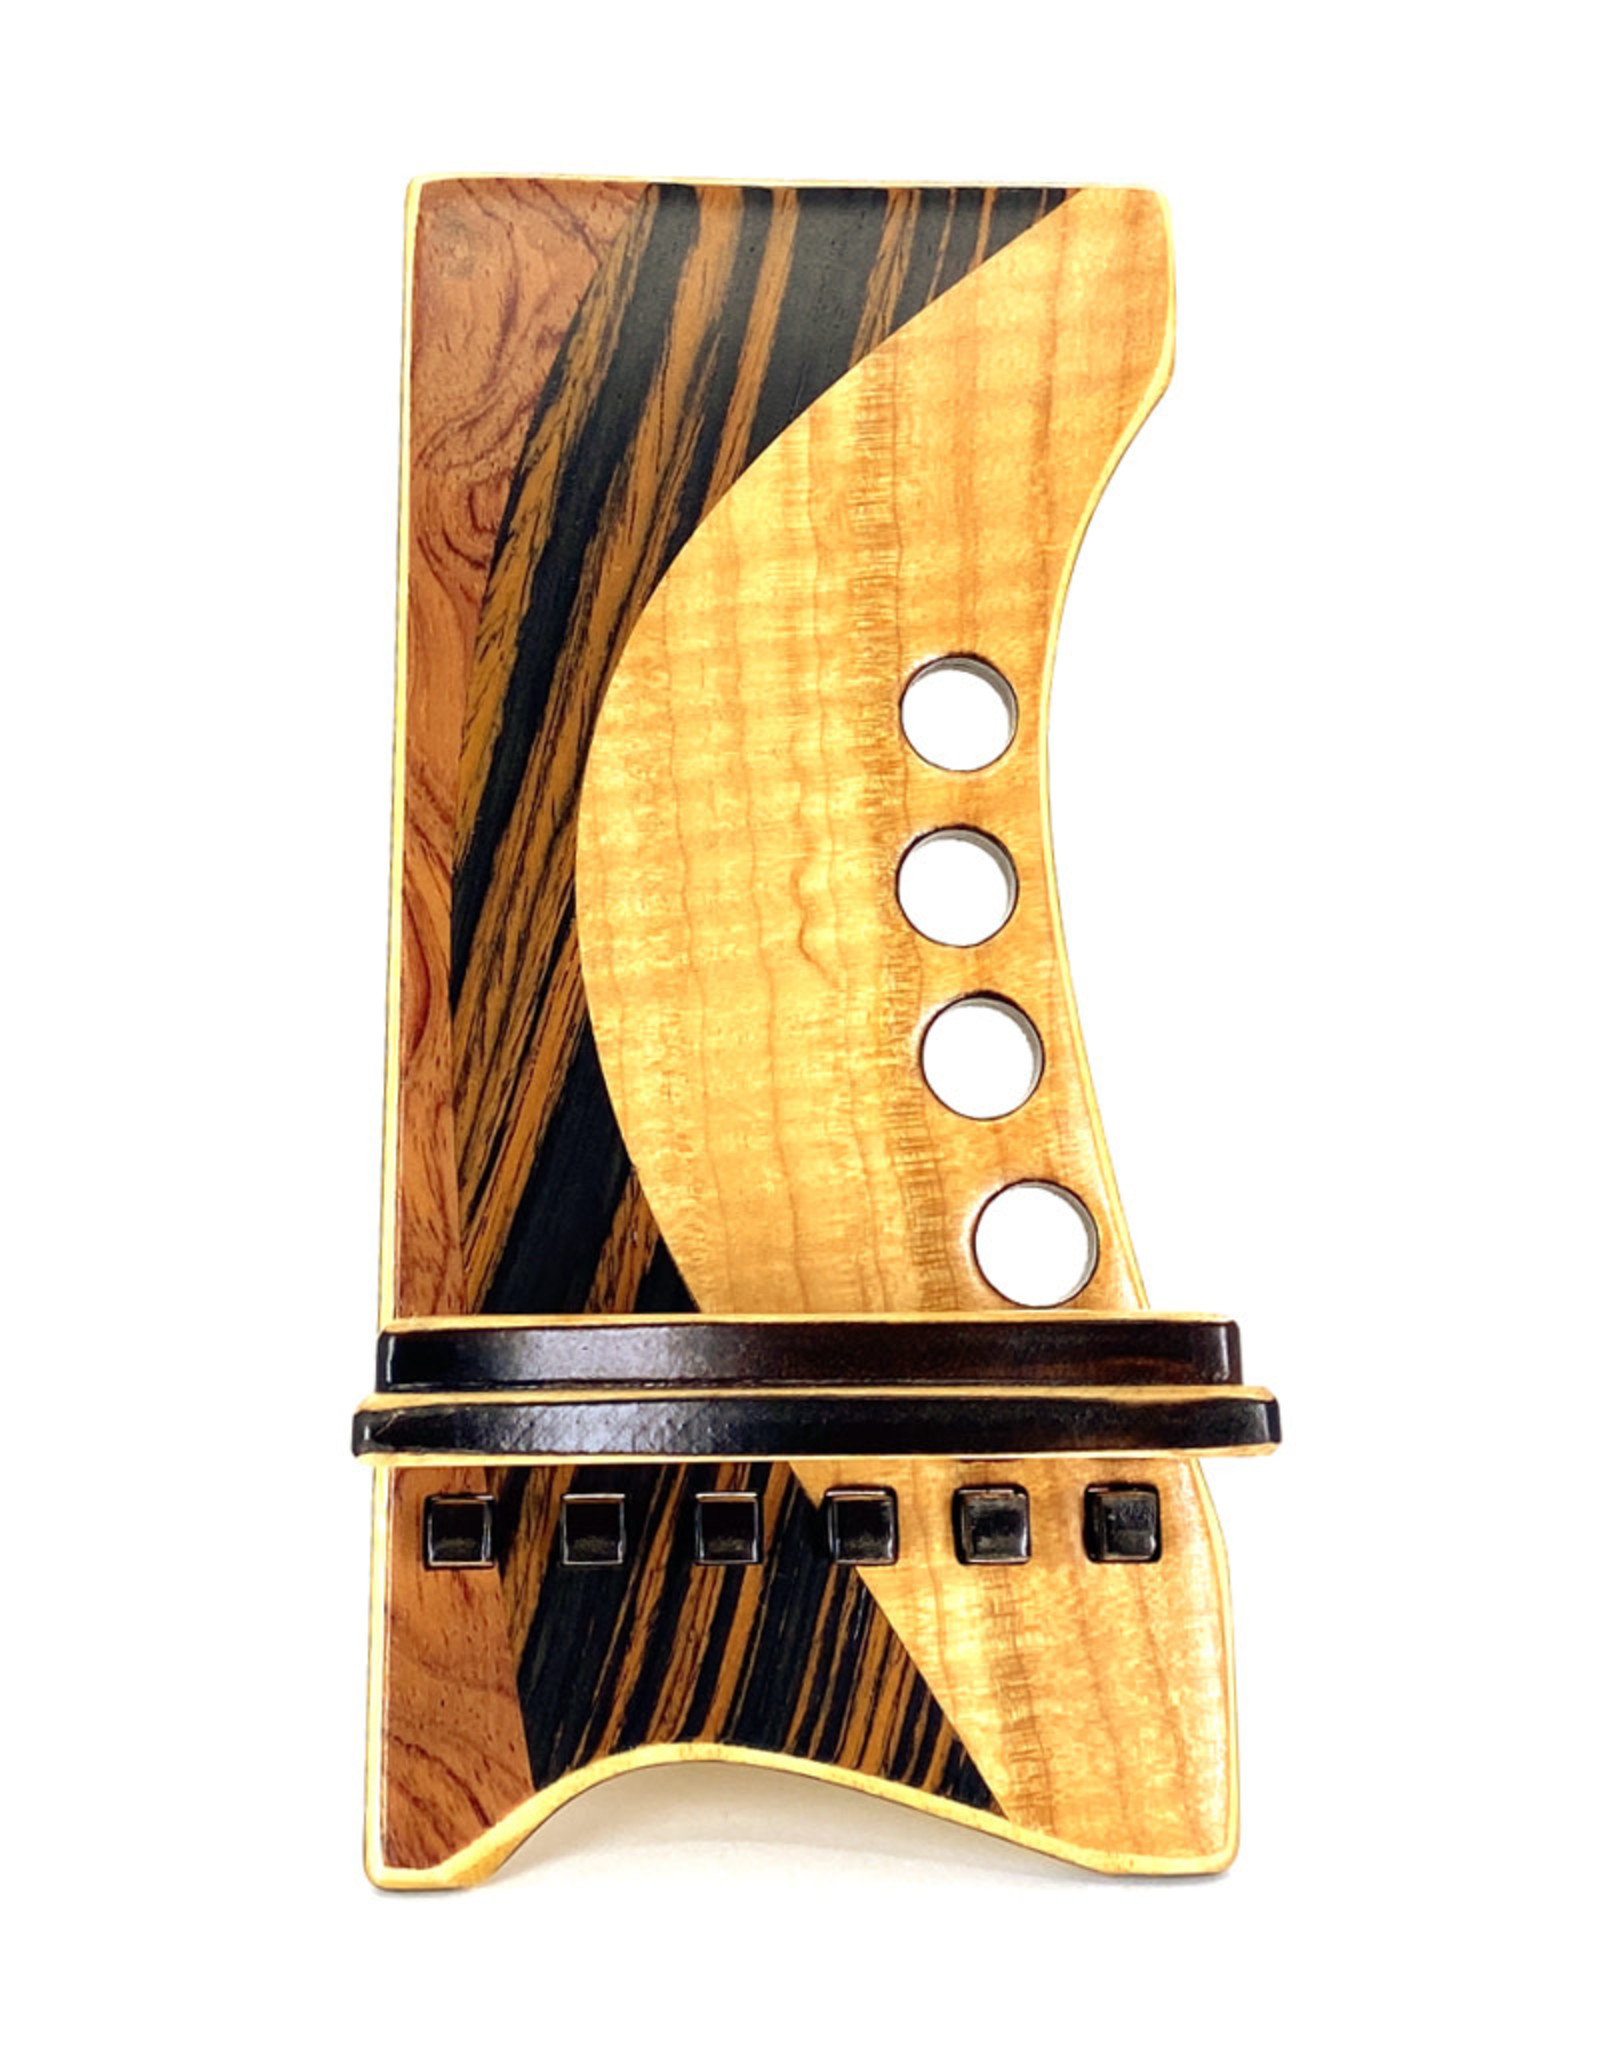 LOST ART WOODWORKS NATURAL WOOD XI MARQUETRY INLAID PHONE STAND